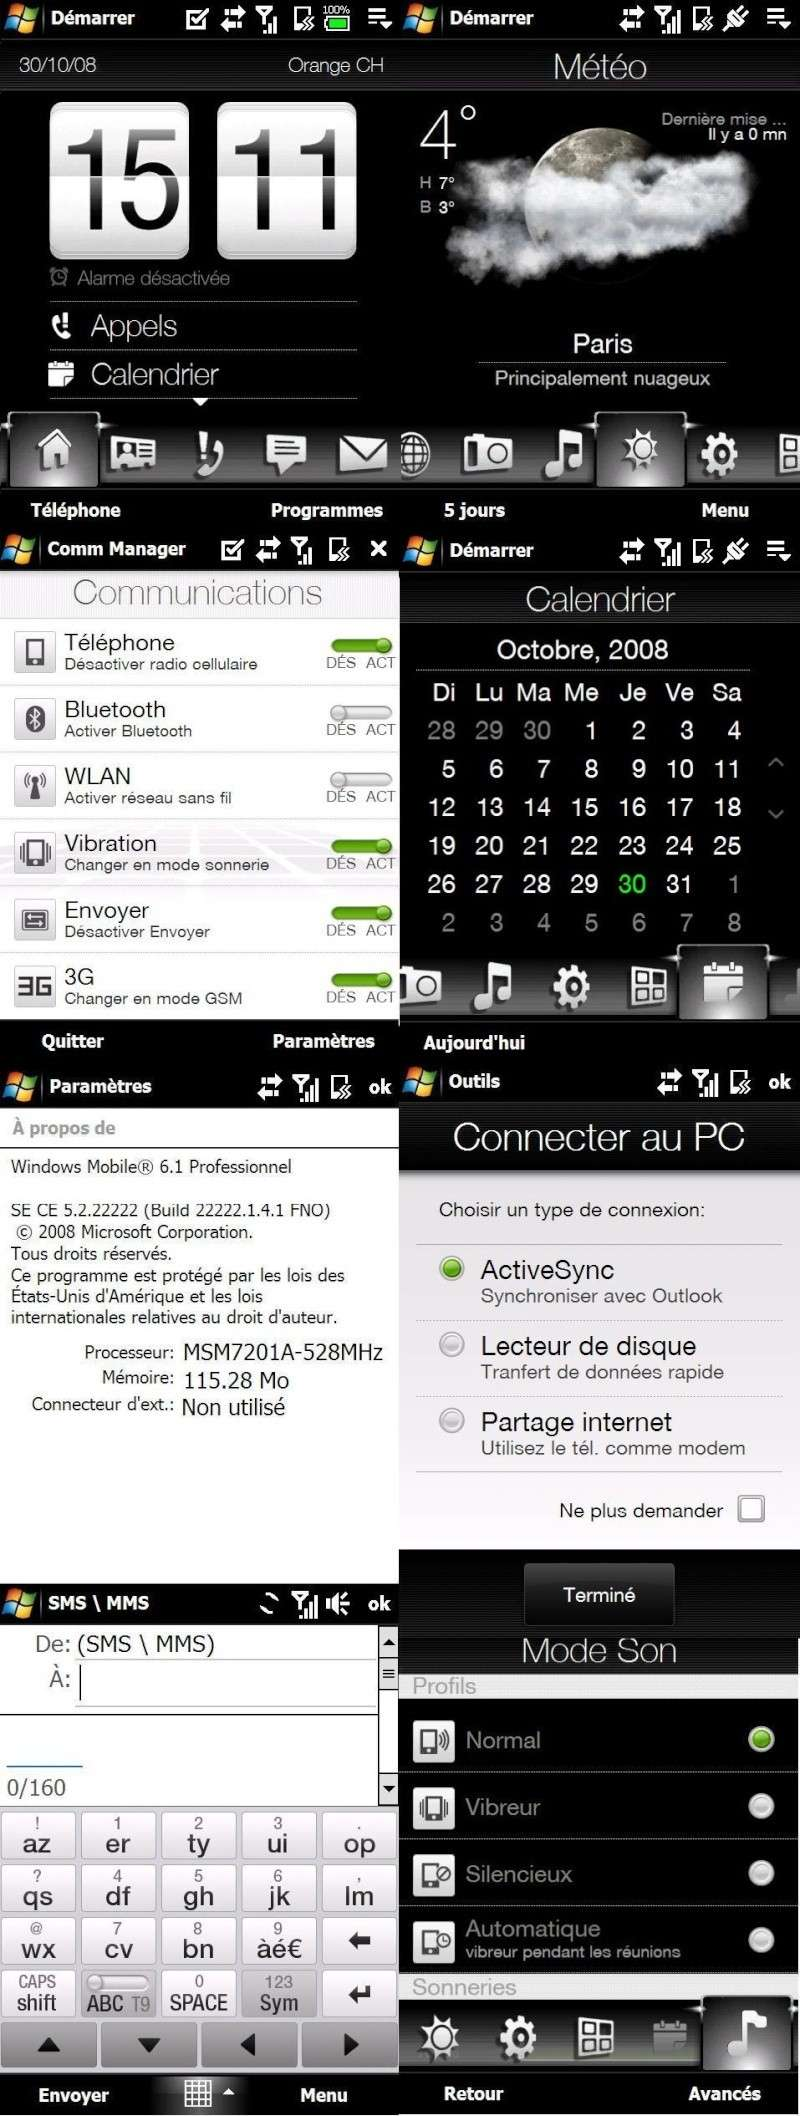 [31OCT08] FNO-HTC v2.31 Fr SE CE 22222 BUILD 22222.1.4.1 FNO  uc compliance Screen13